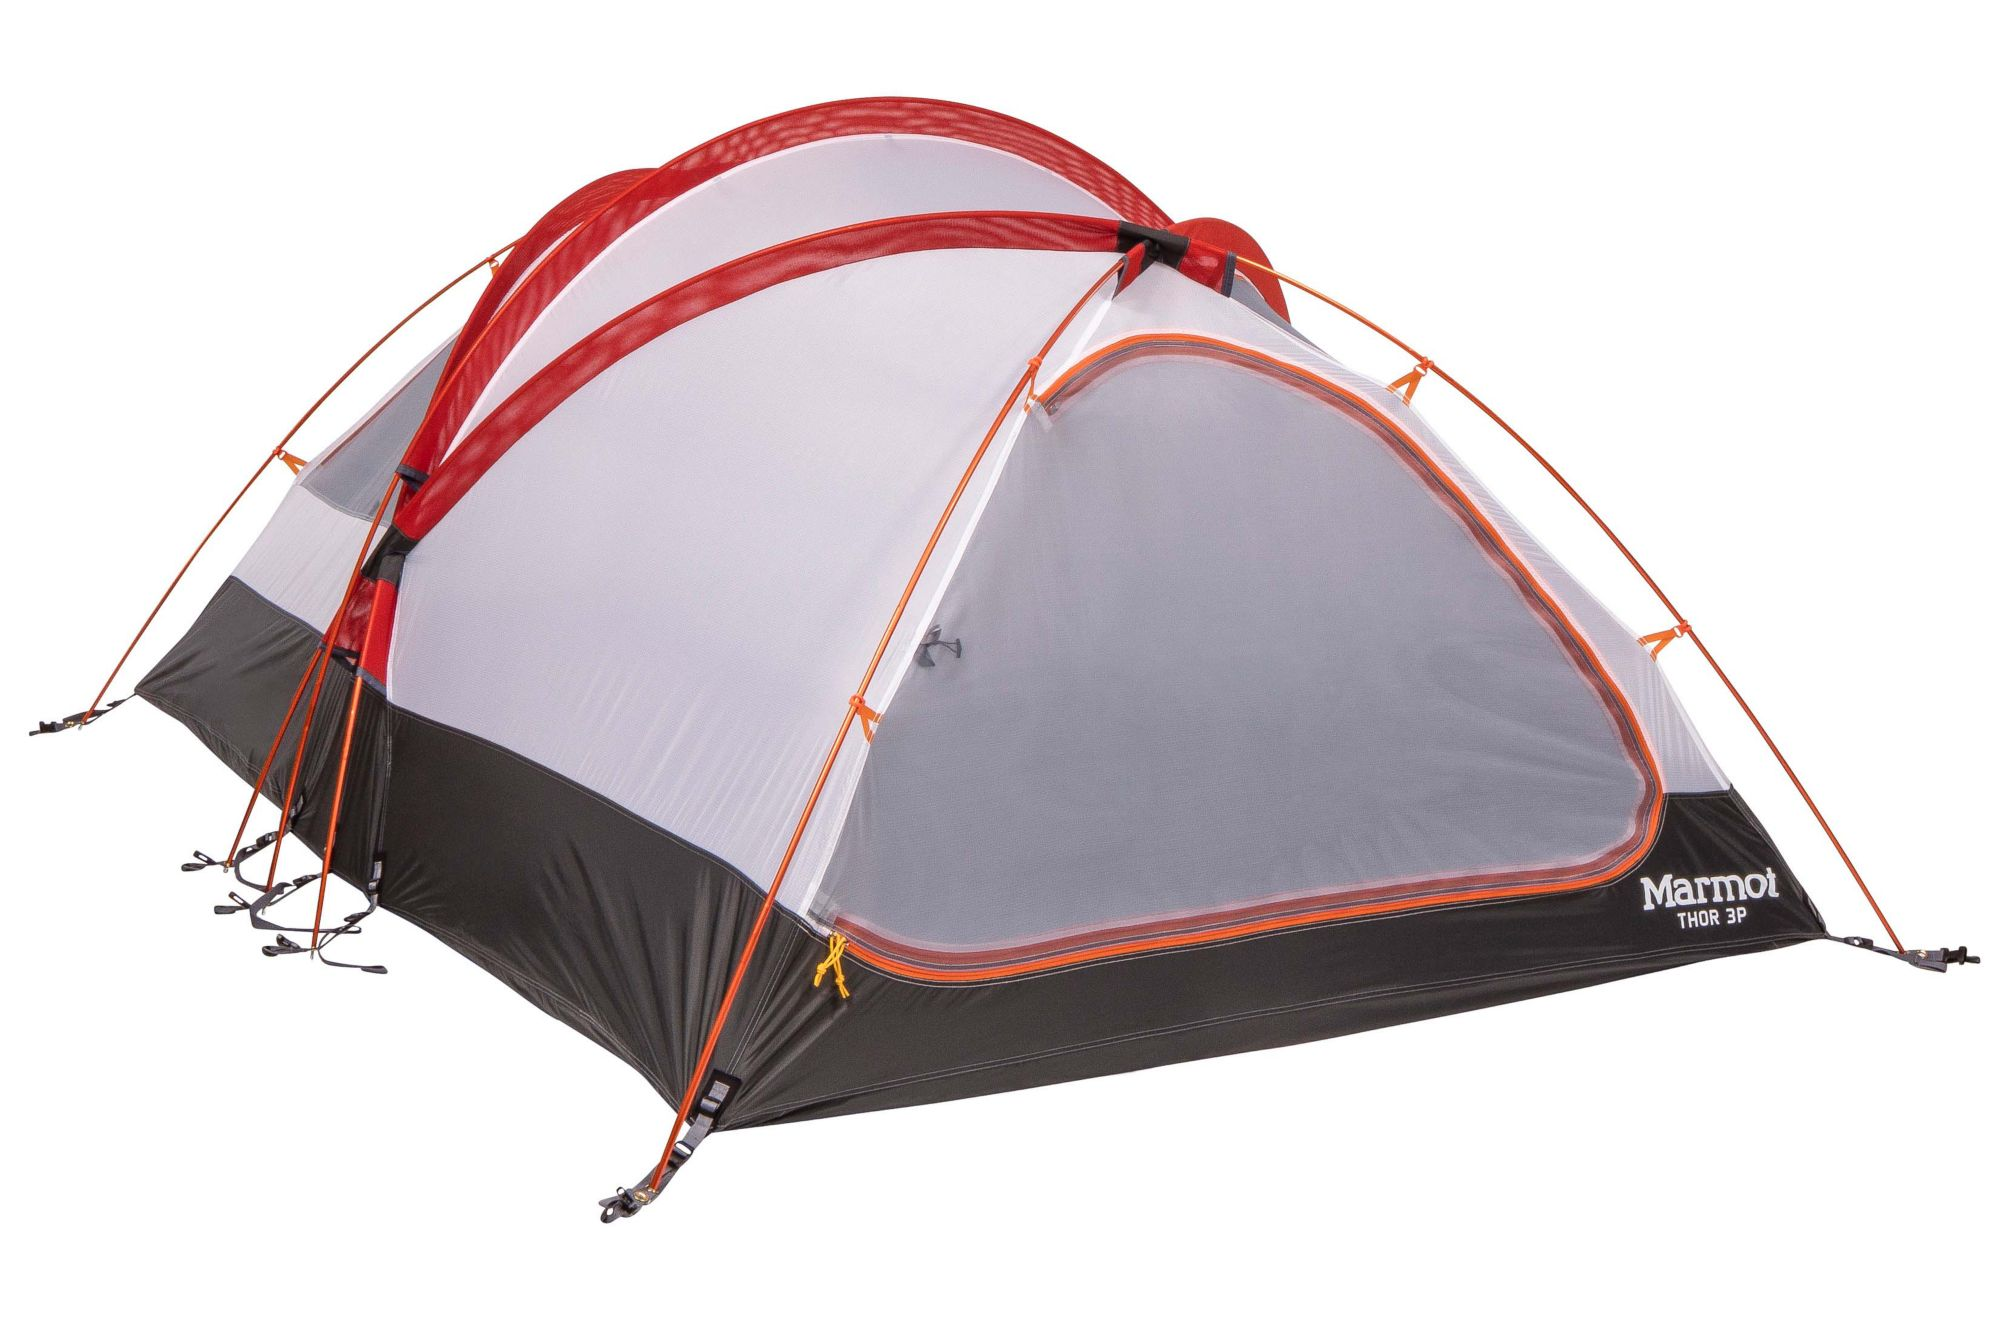 Thor 3-Person Tent Blaze medium  sc 1 st  Marmot & 4-season Tents / Equipment | Marmot.com